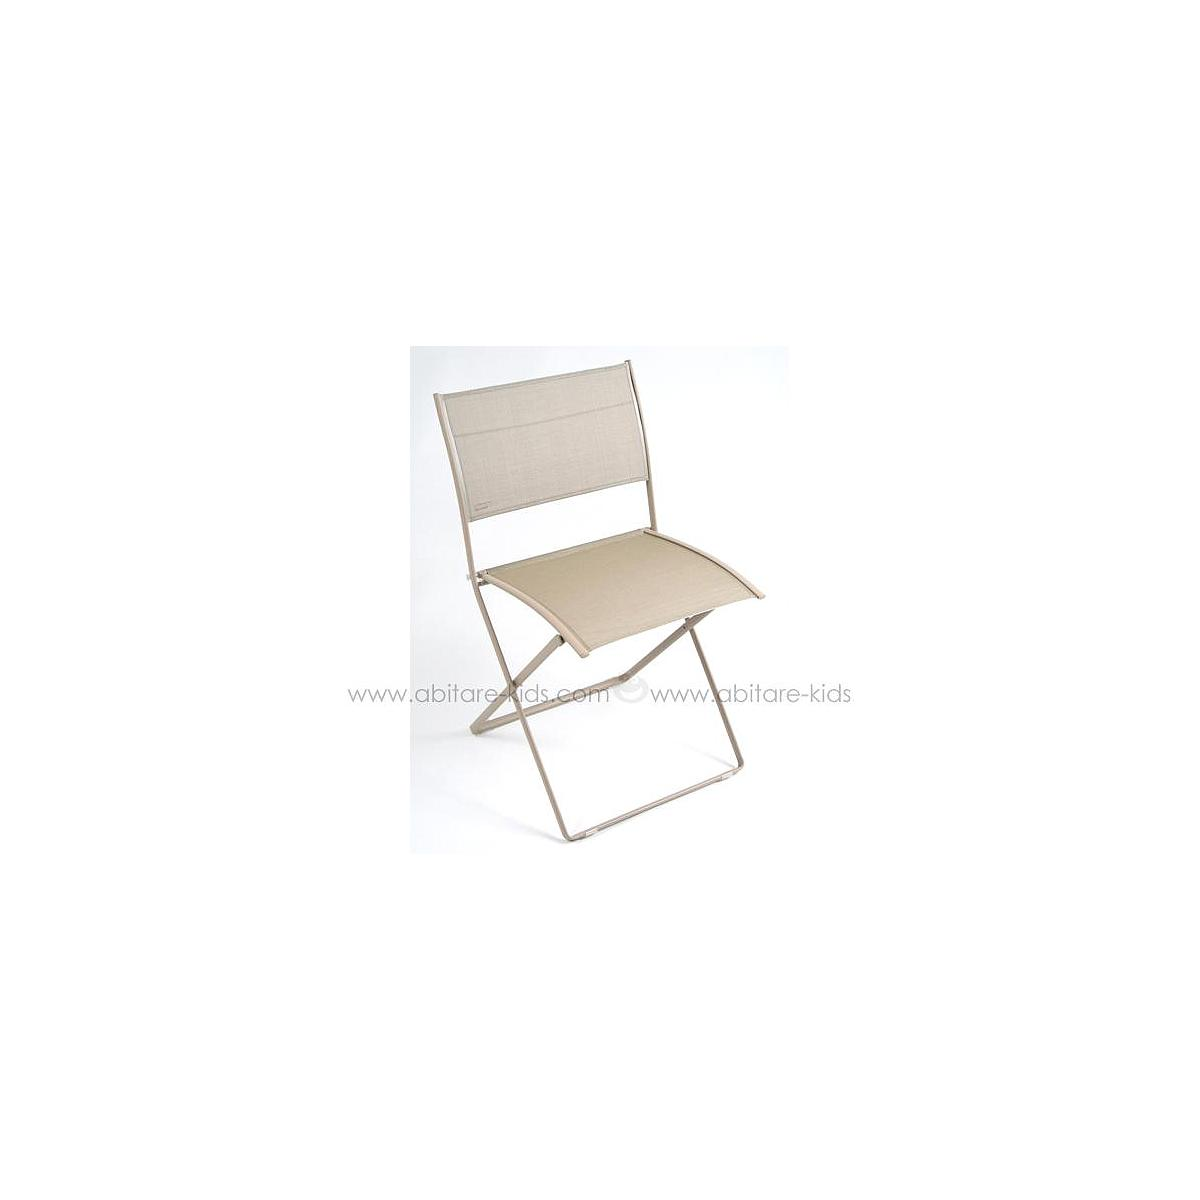 PLEIN AIR by Fermob Chaise pliante Muscade